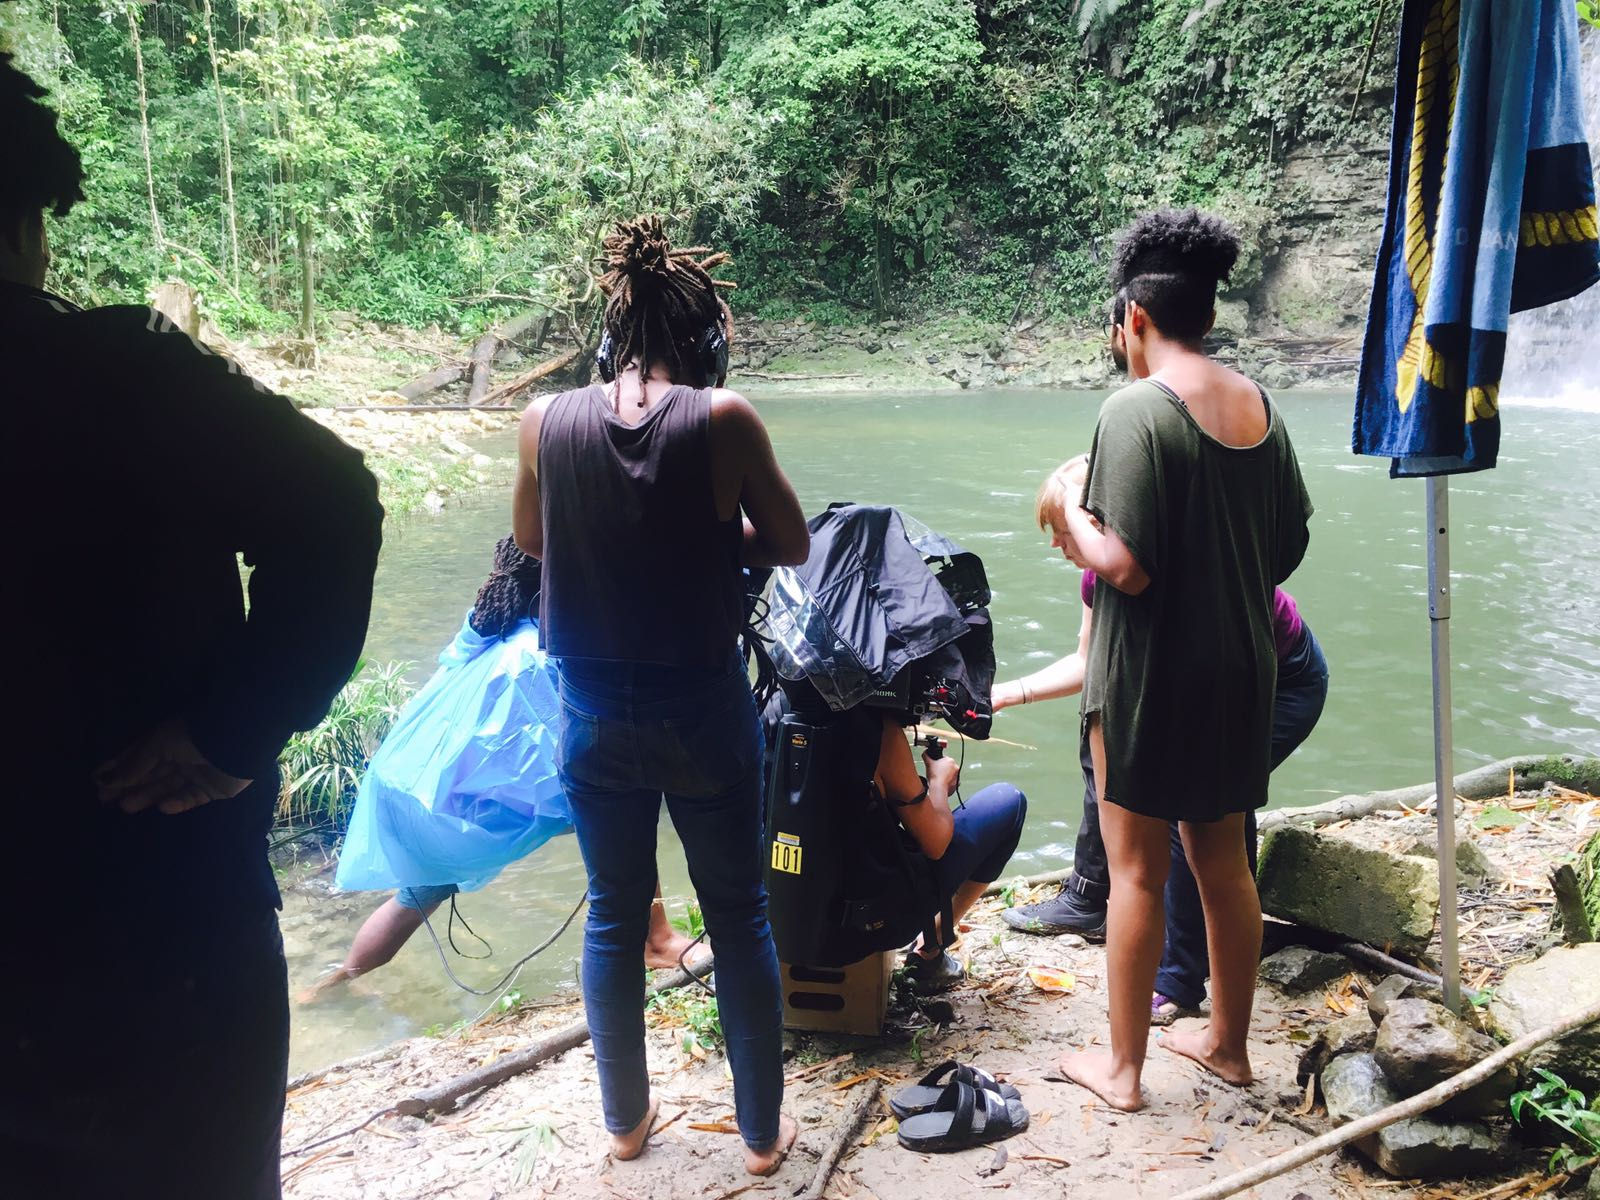 Crew at work during the Waterfall scene!